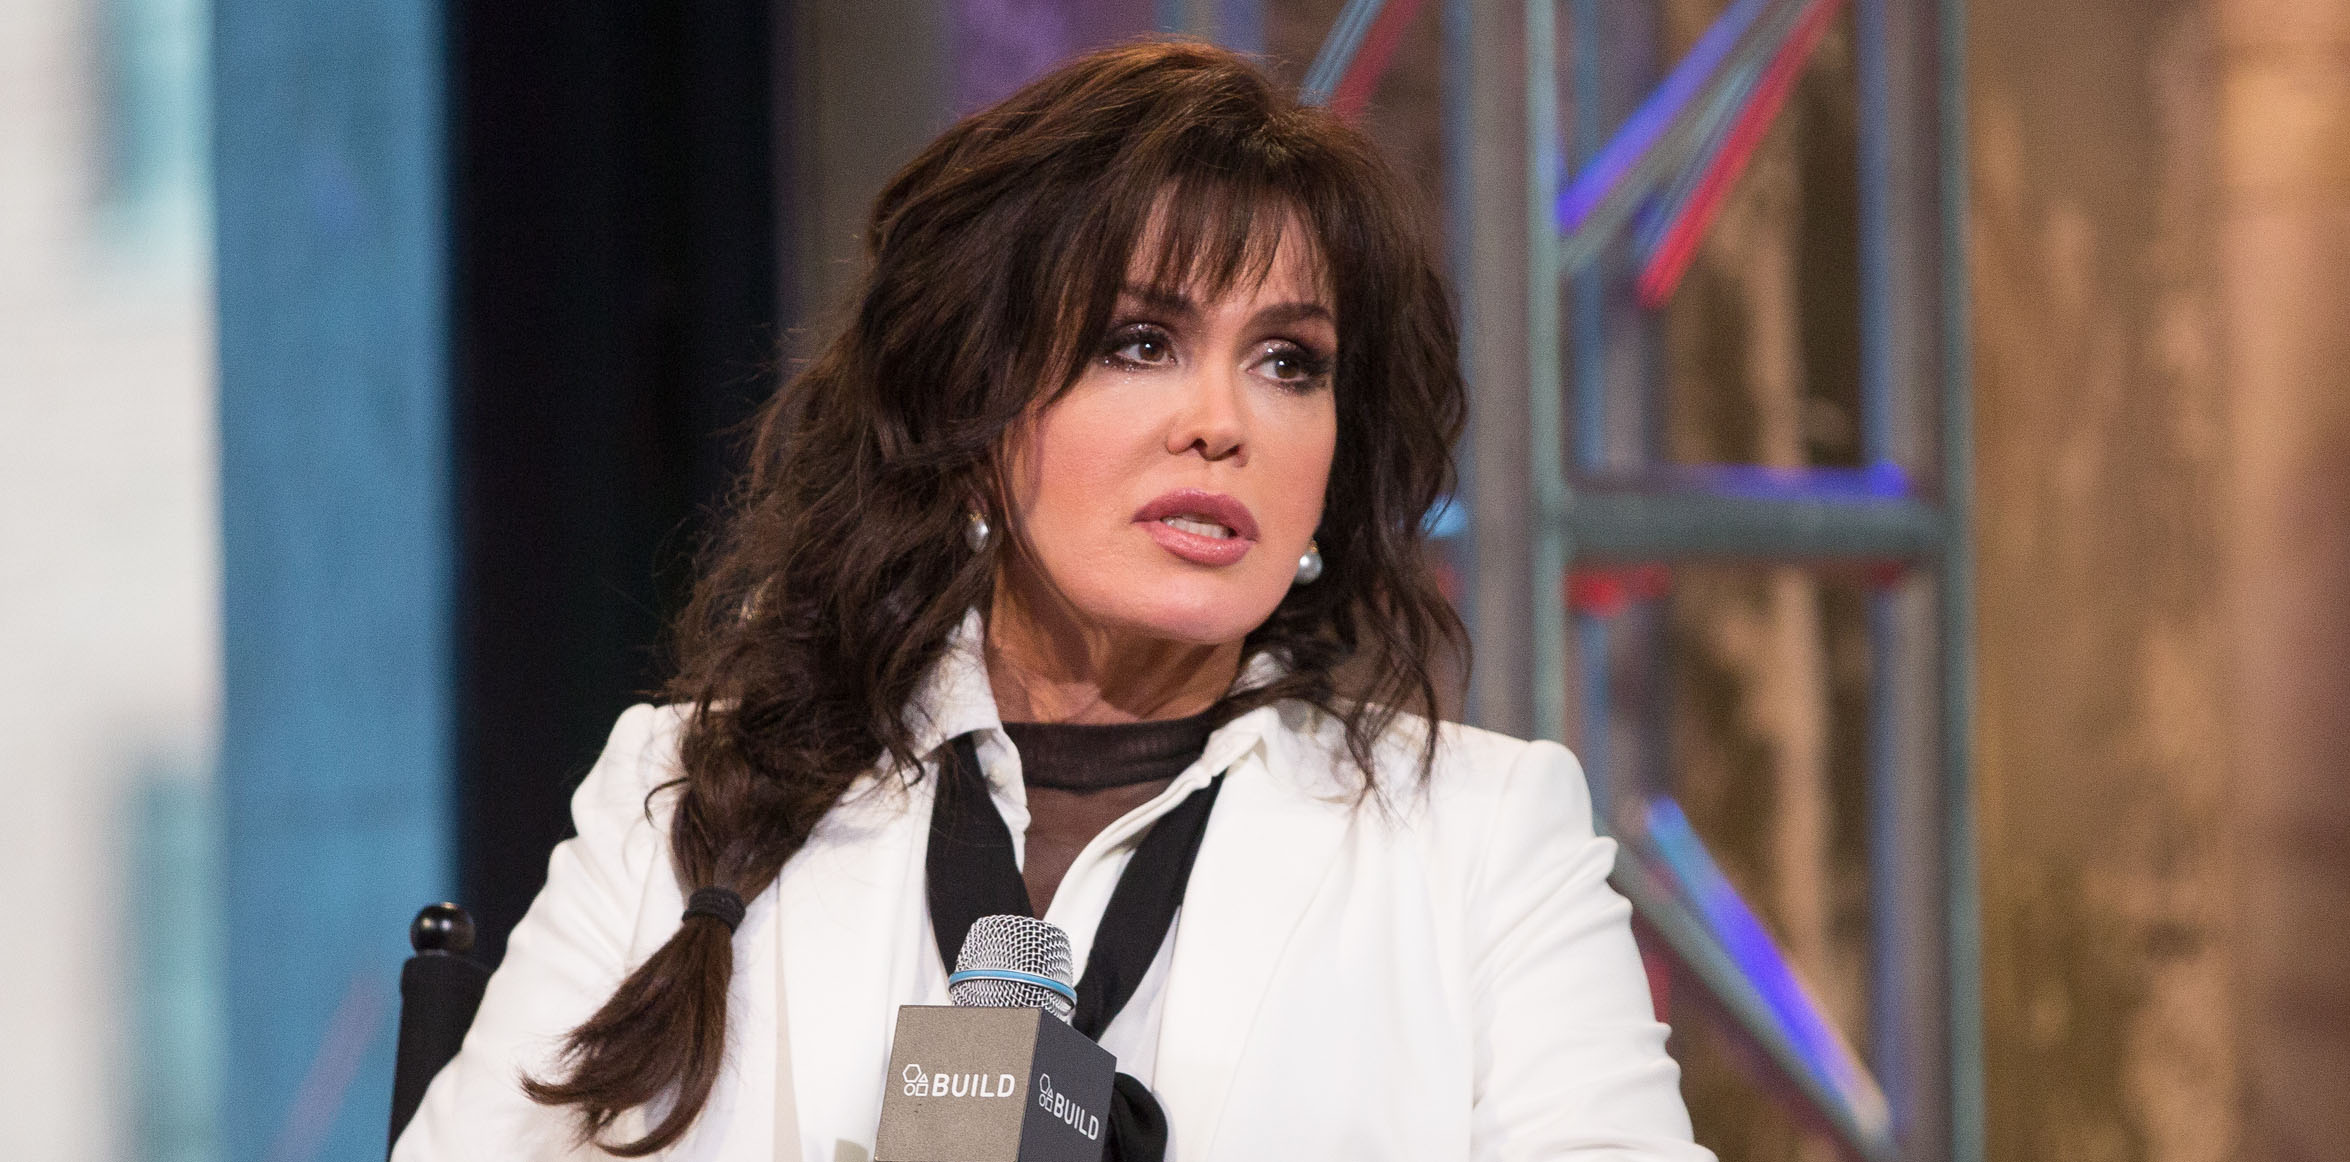 Marie Osmond Apologizes to Fans for Canceling Las Vegas Concert: 'It Breaks My Heart'